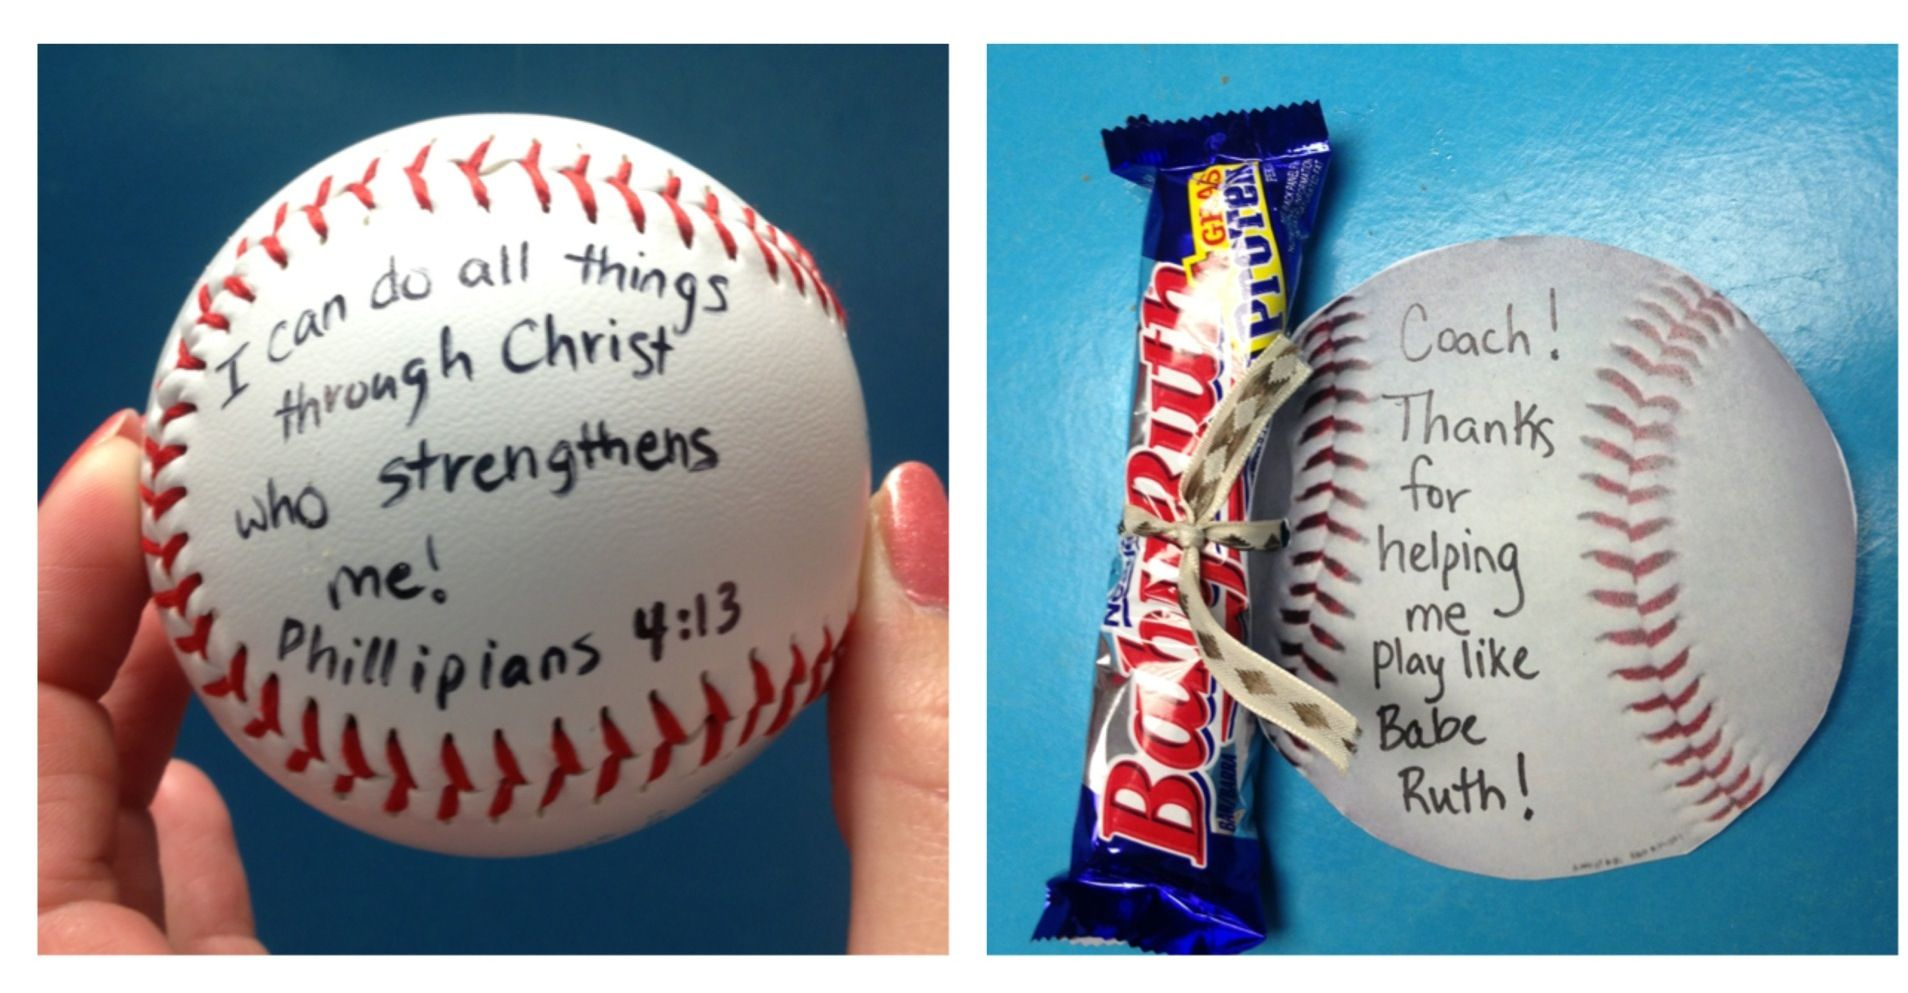 Pin By Jennifer Meyers On Gifts And Ideas Gifts For Baseball Players Baseball Players Baseball Gifts